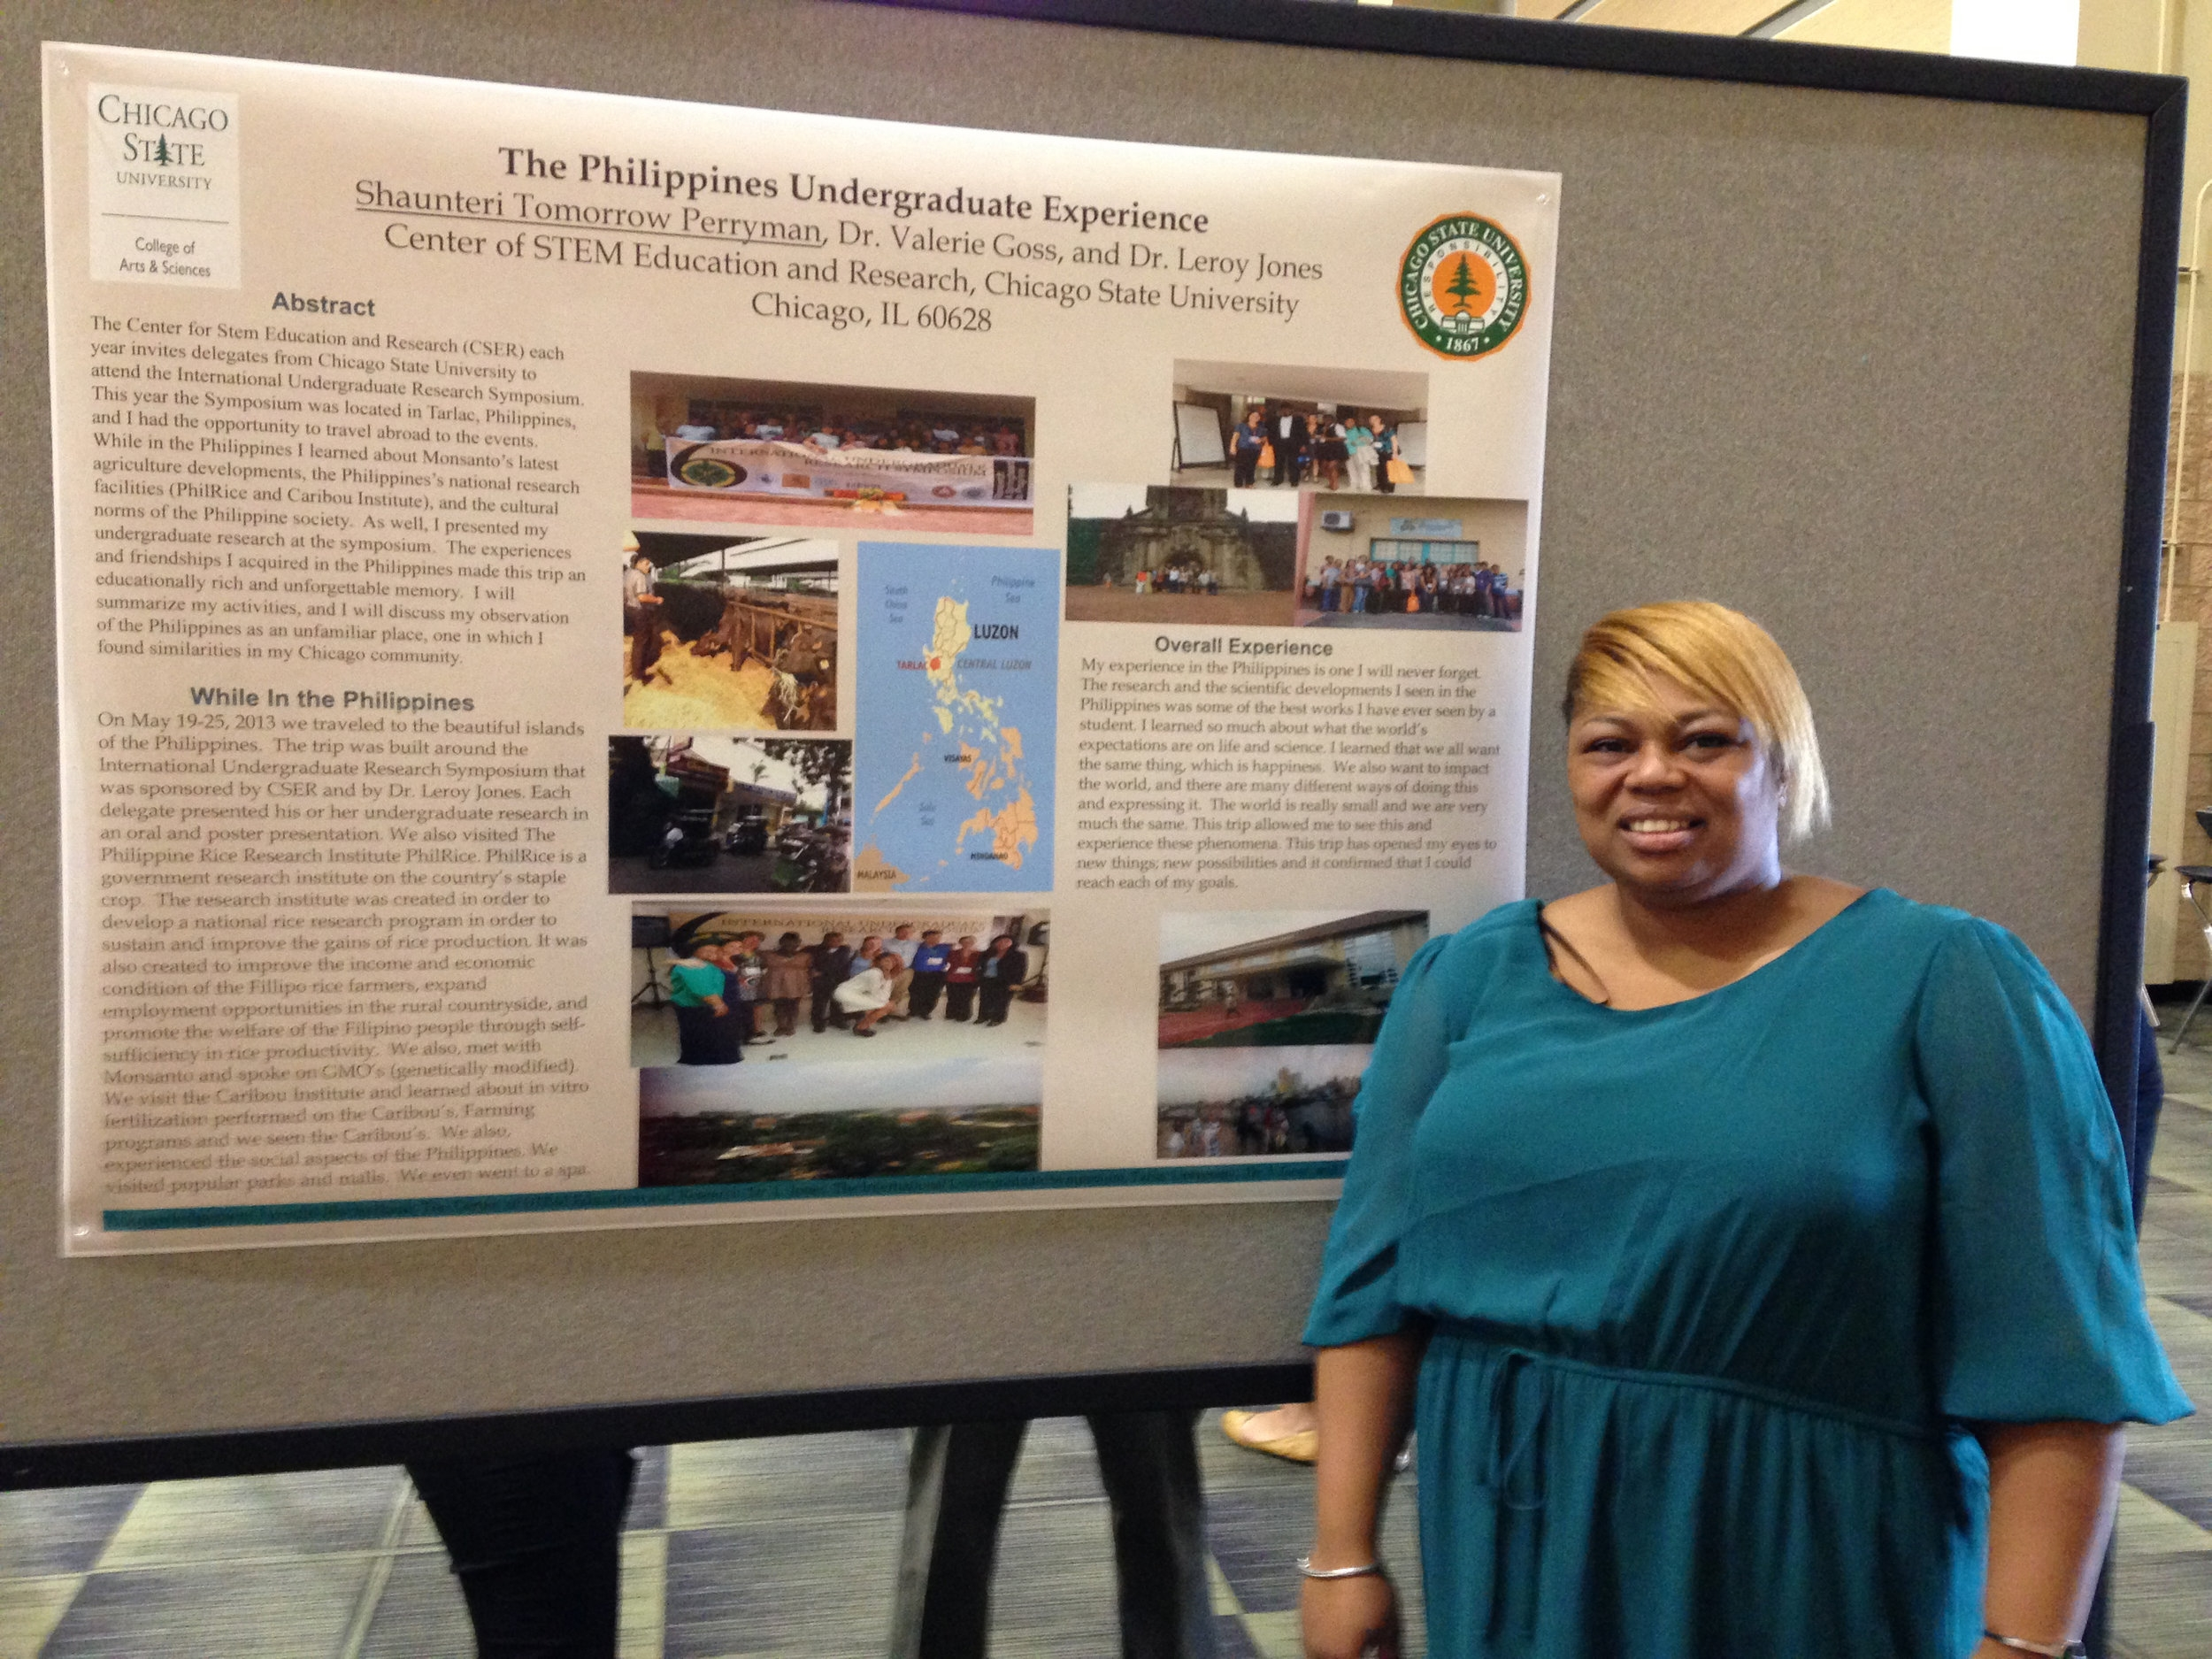 Chicago State University Annual Science Conference